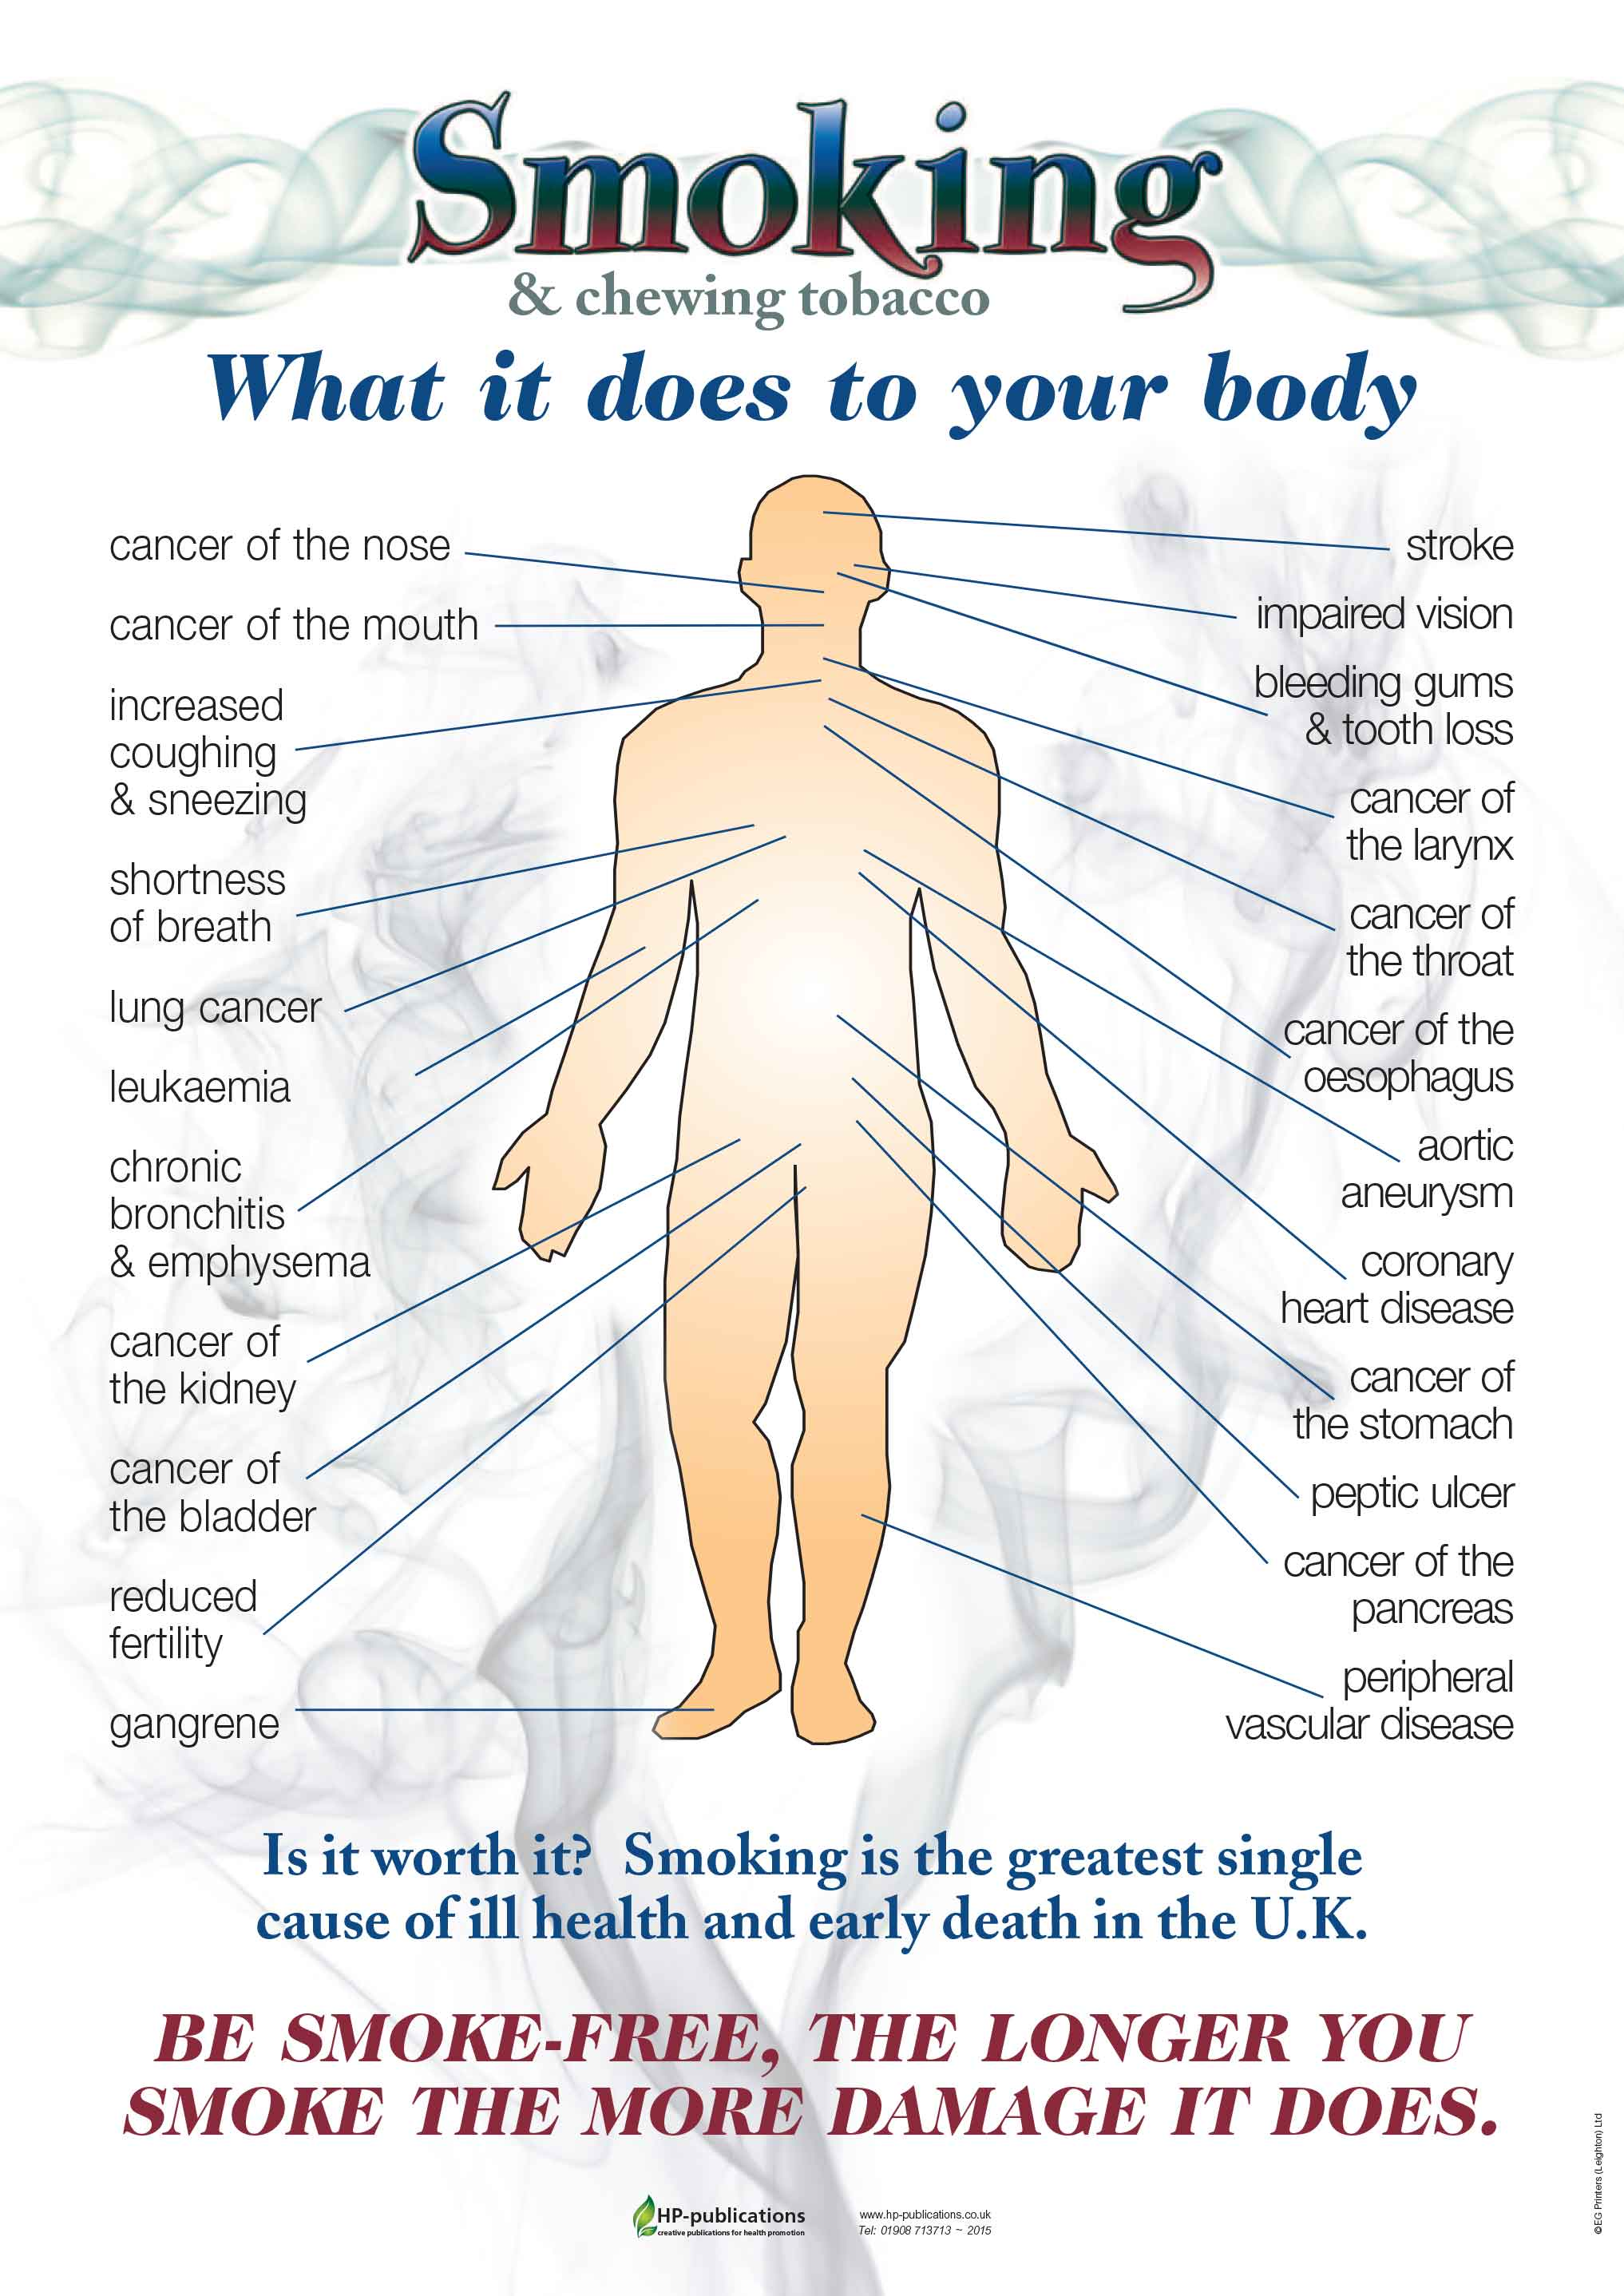 Smoking: what it does to your body